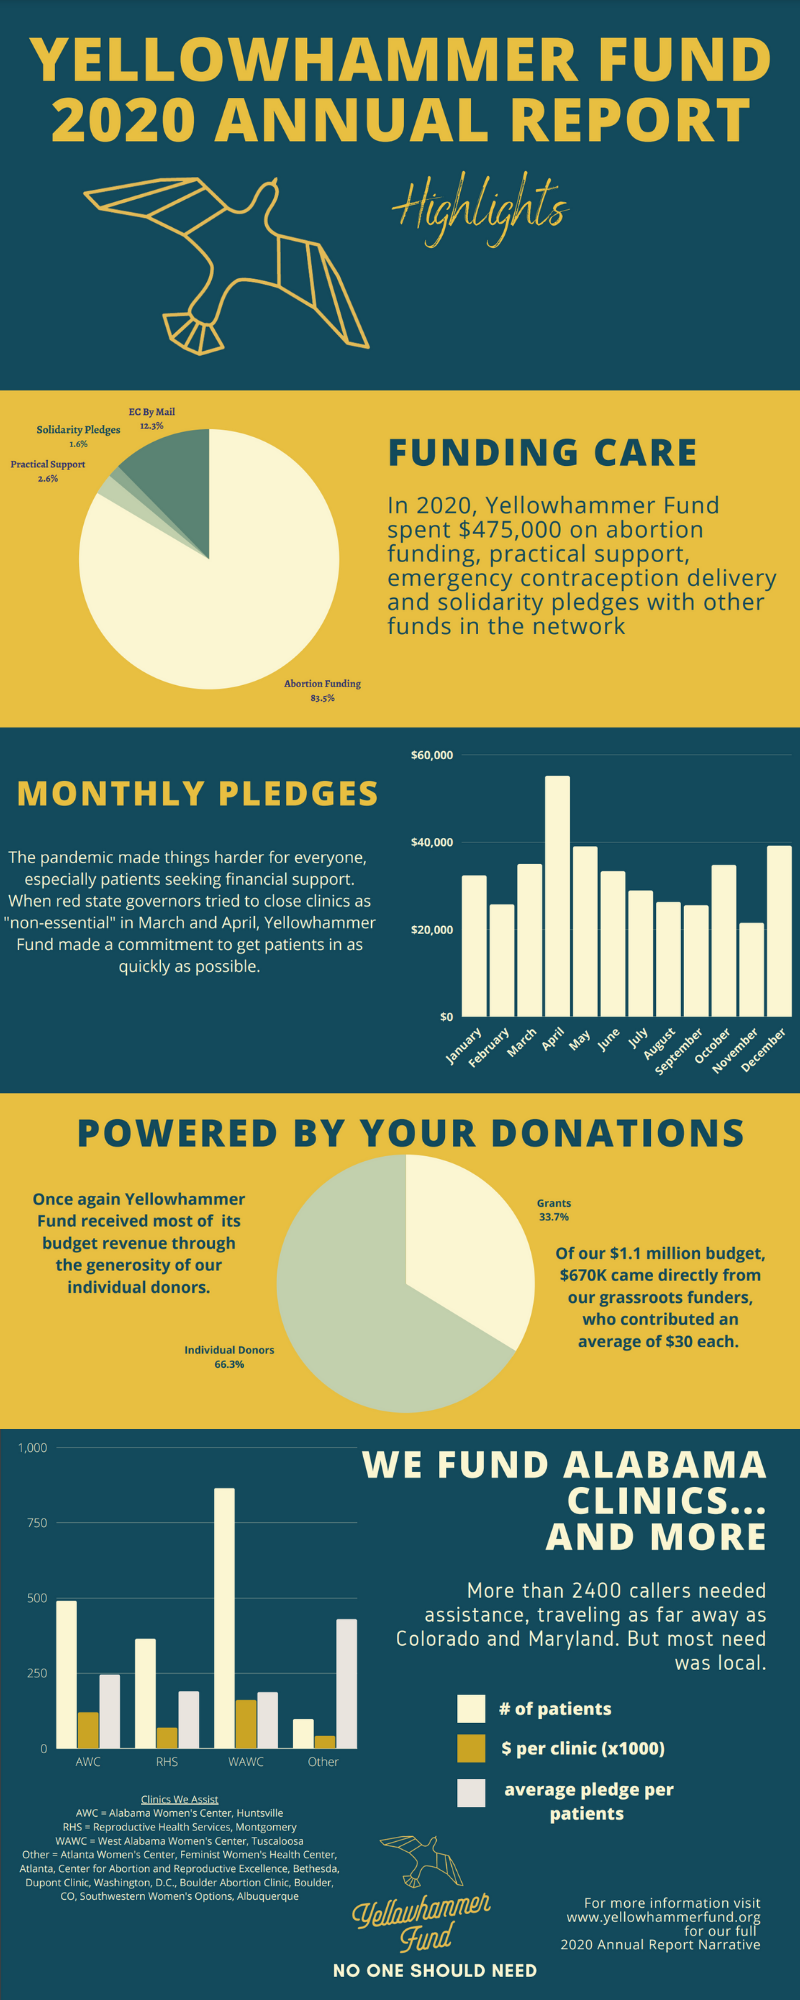 Yellowhammer Fund's 2020 Annual Report Highlights